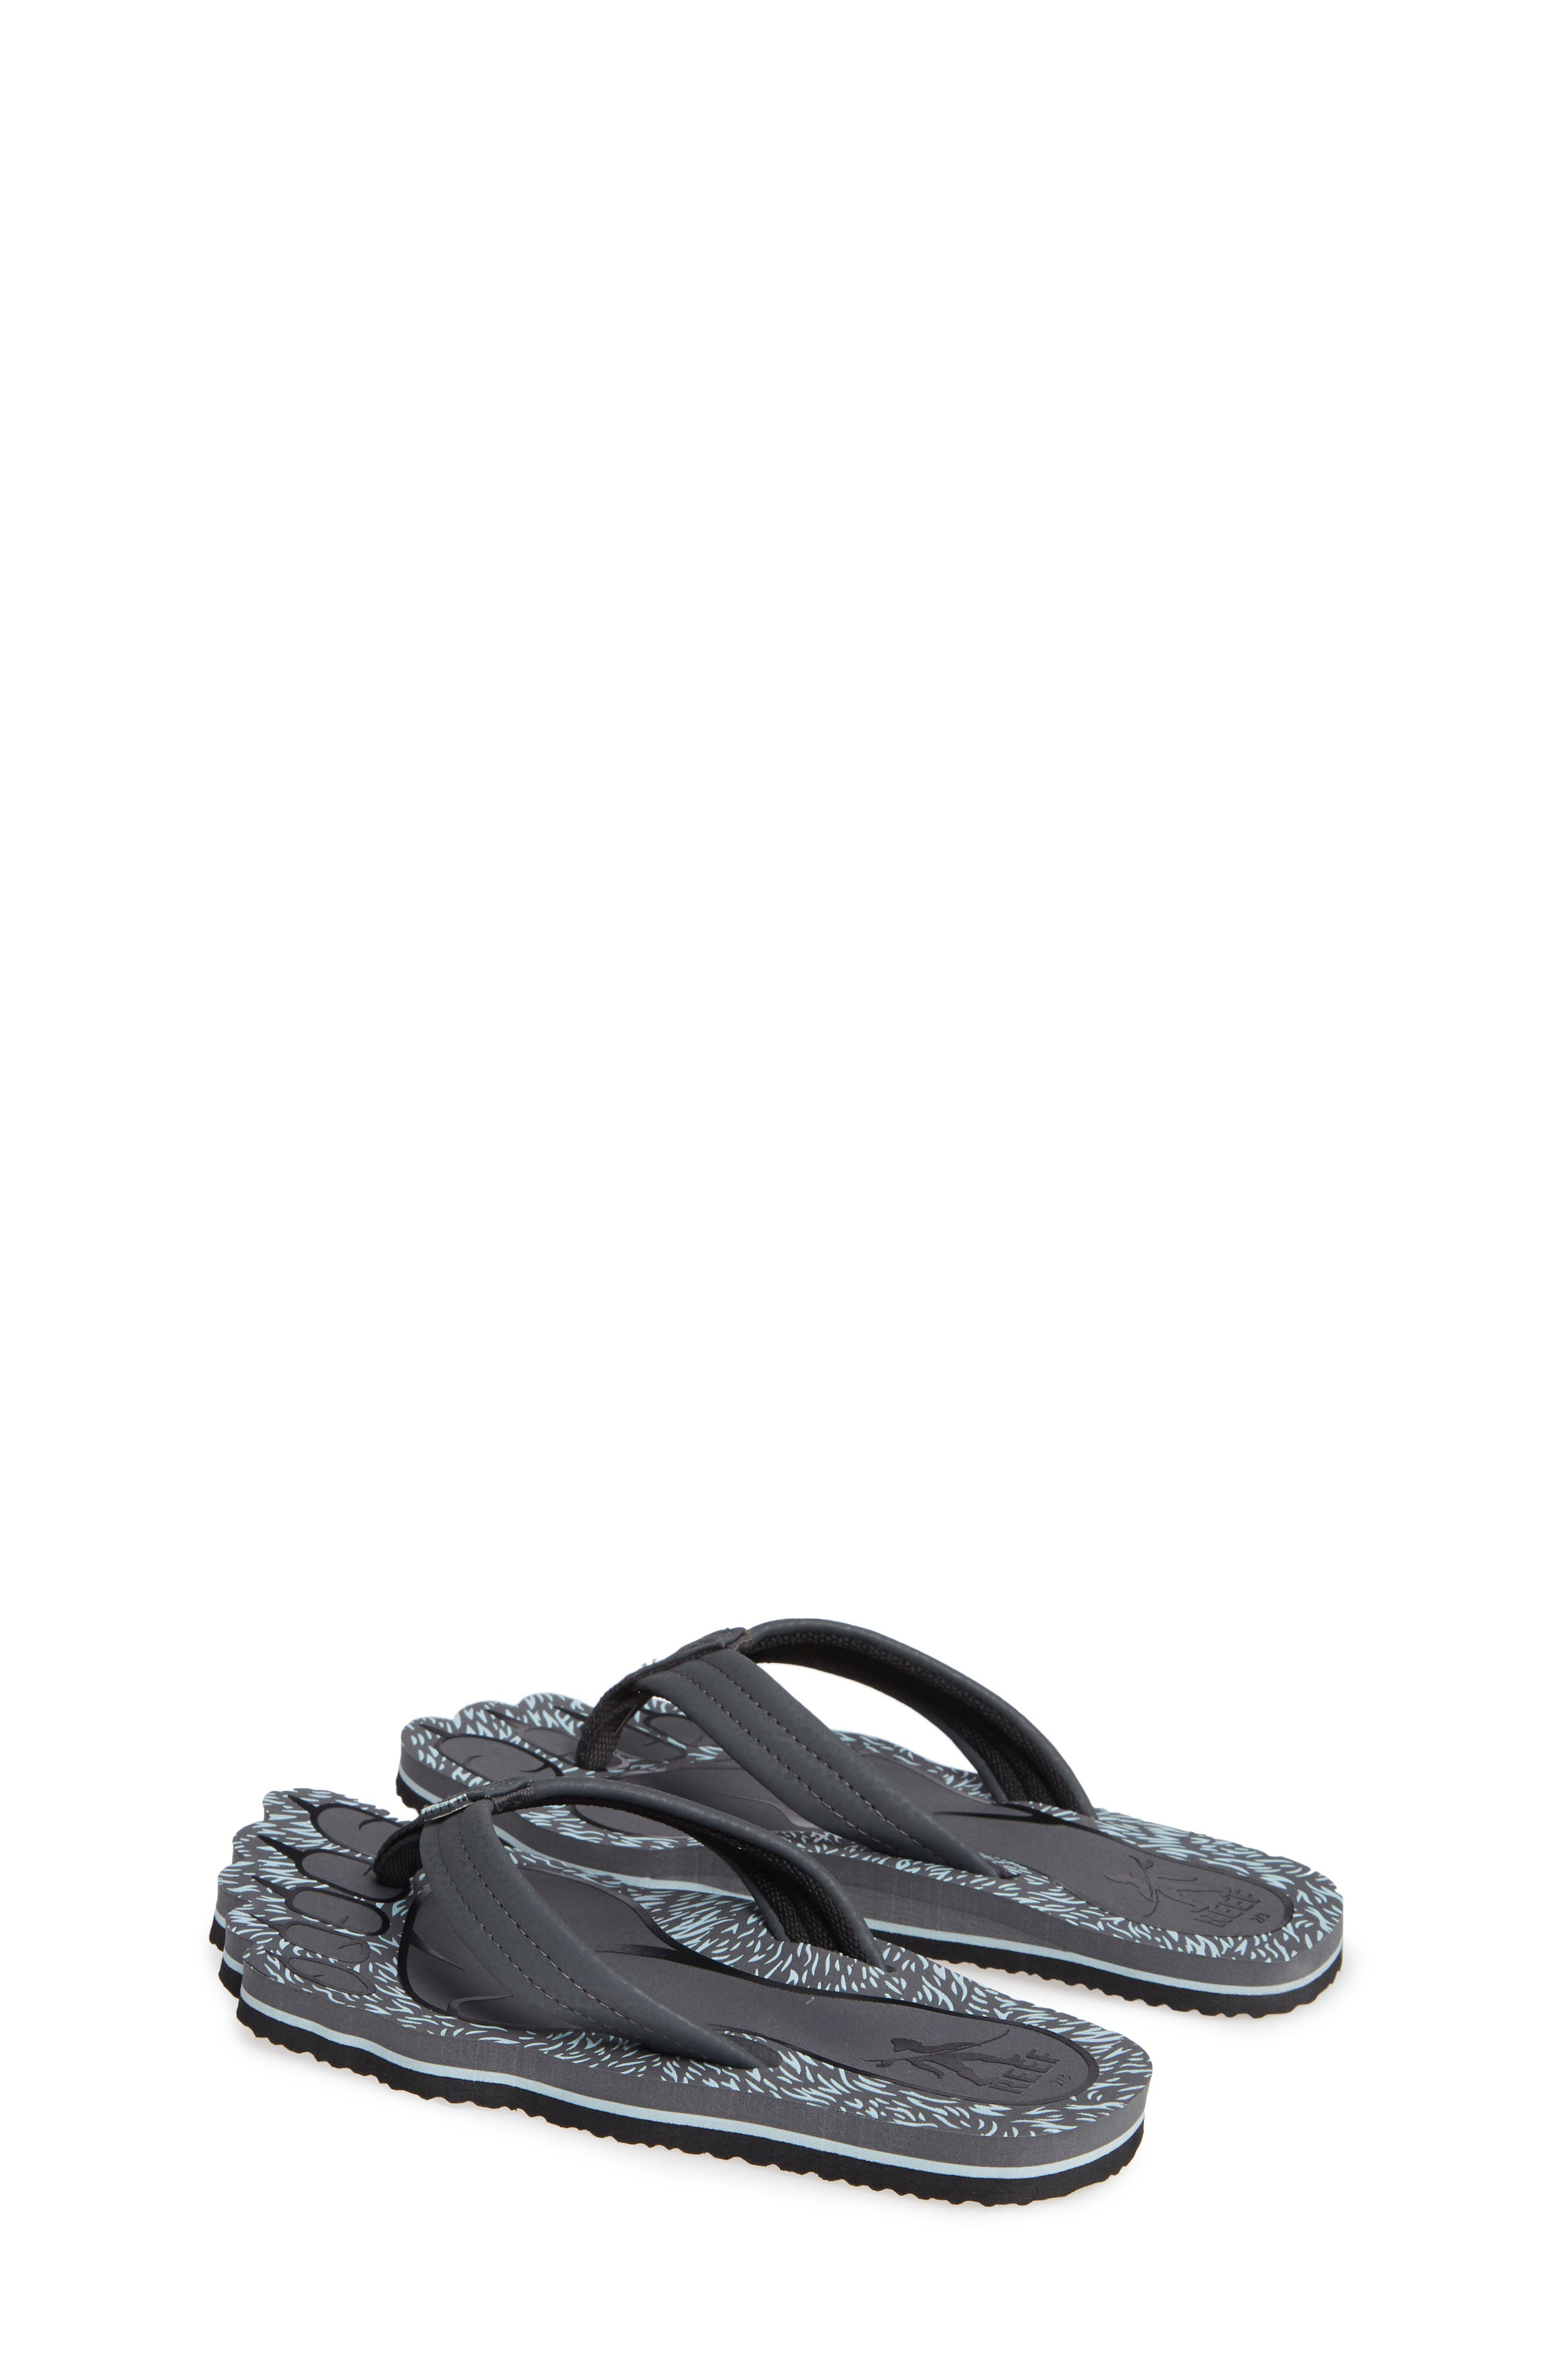 622a89c0f001 Boys  Reef Shoes